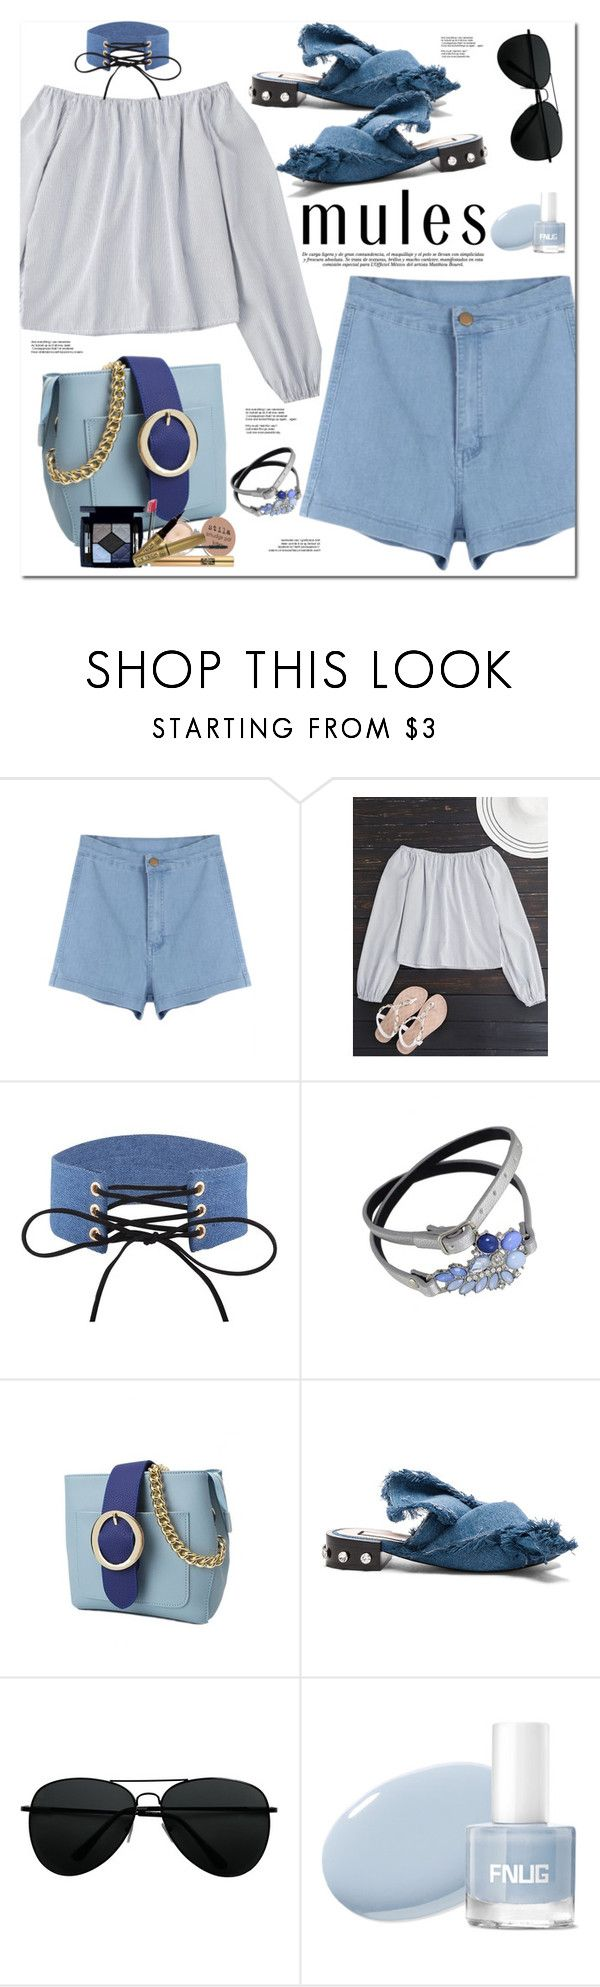 """""""Slip 'Em On: Mules"""" by oshint ❤ liked on Polyvore featuring N°21"""